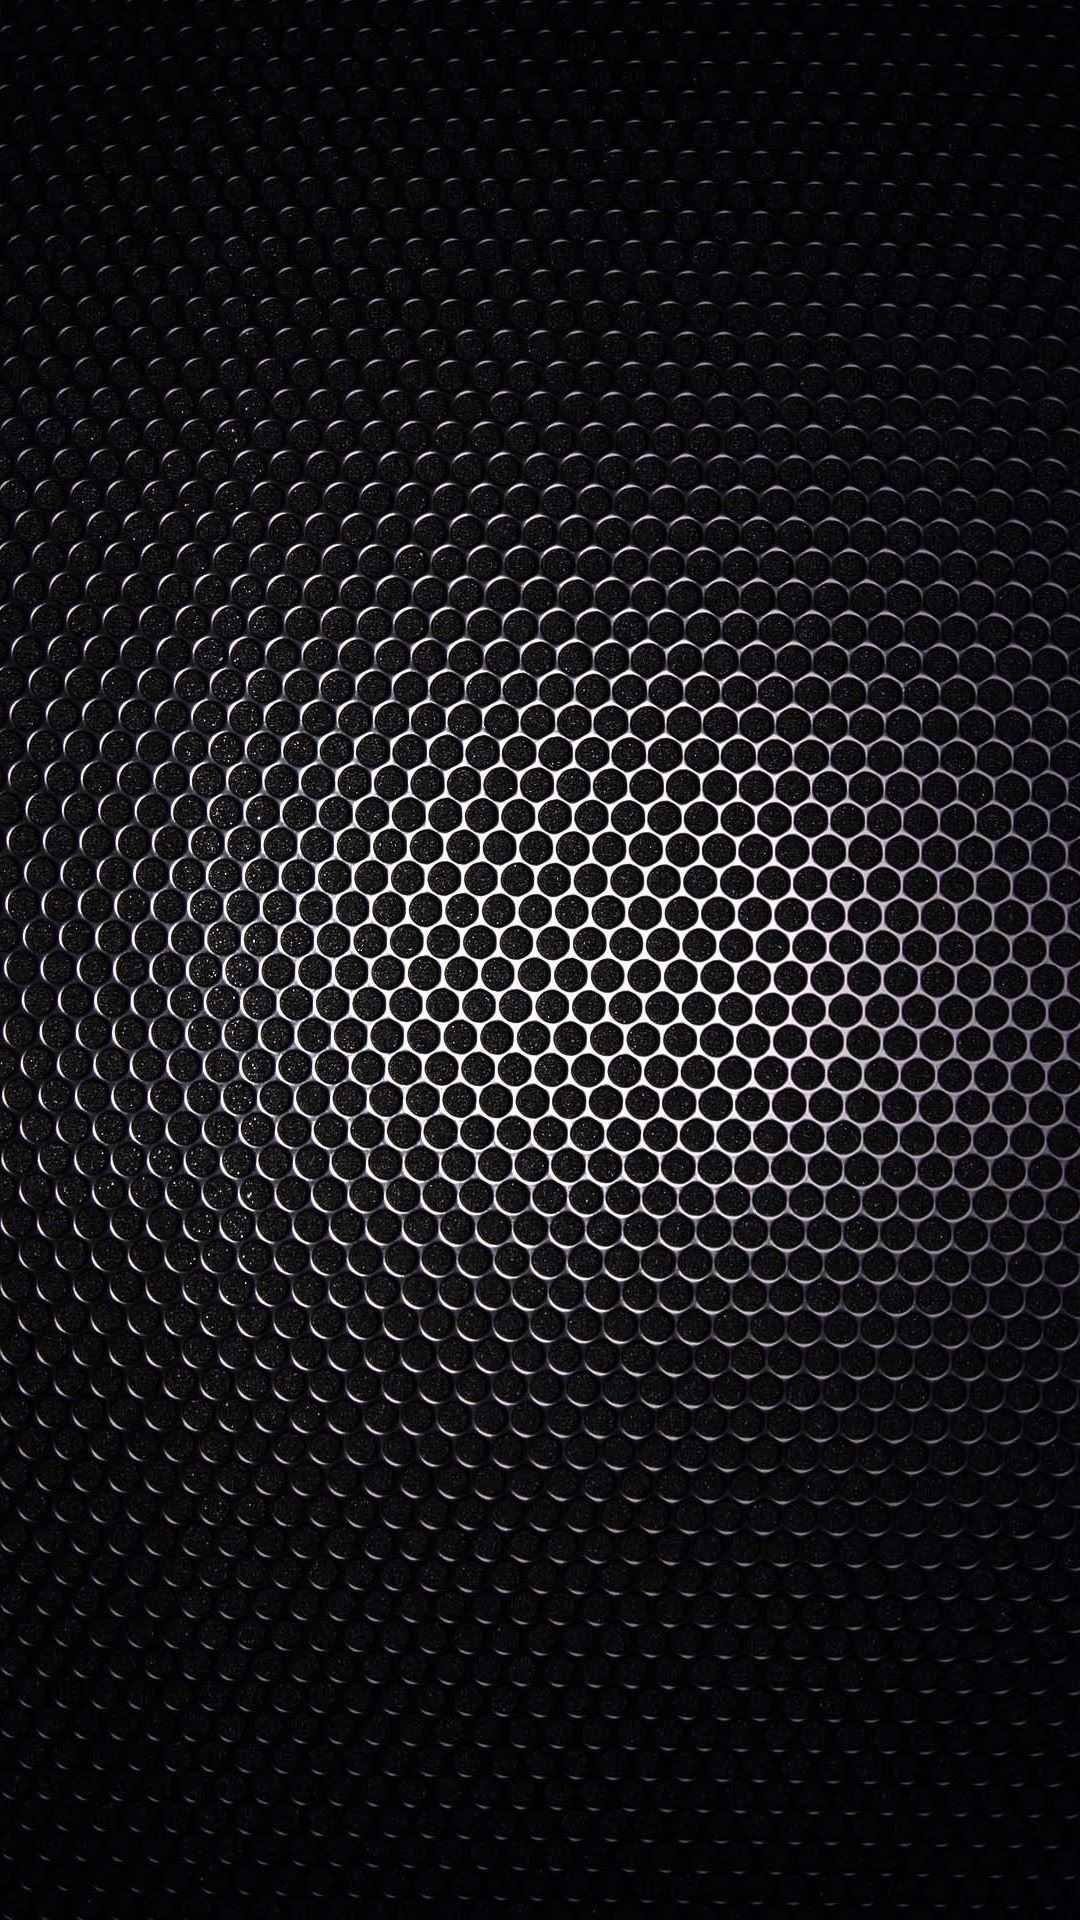 Metal grid pattern Dark wallpaper, Iphone 6 wallpaper